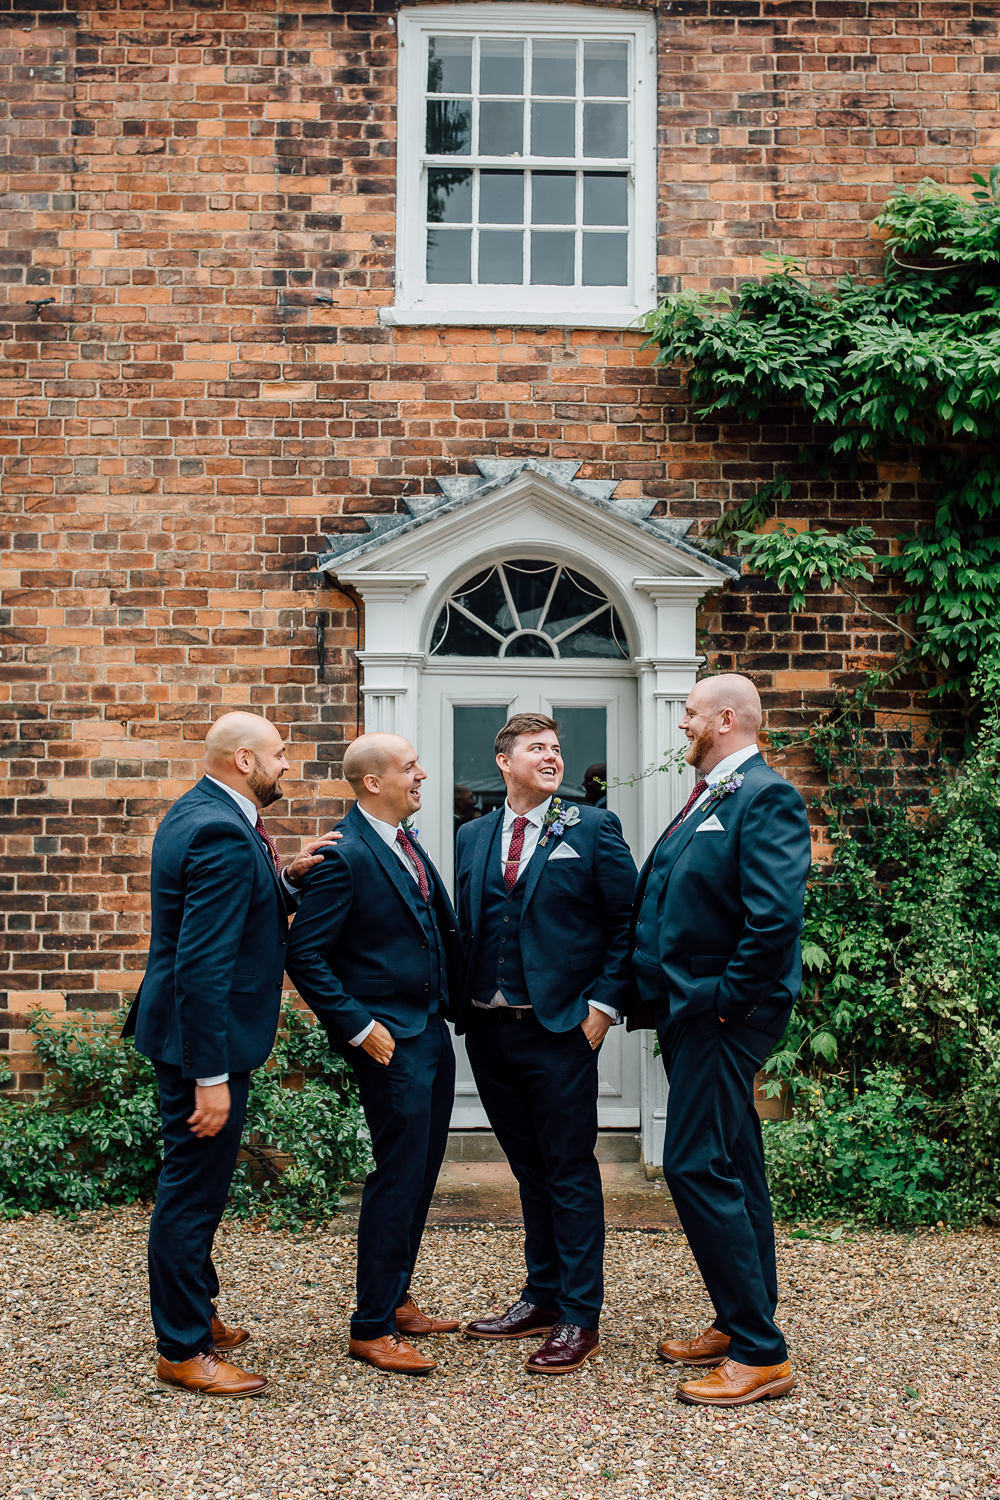 Groom Groomsmen Suit Navy Burgundy Tie Barff Country House Wedding Sarah Beth Photo